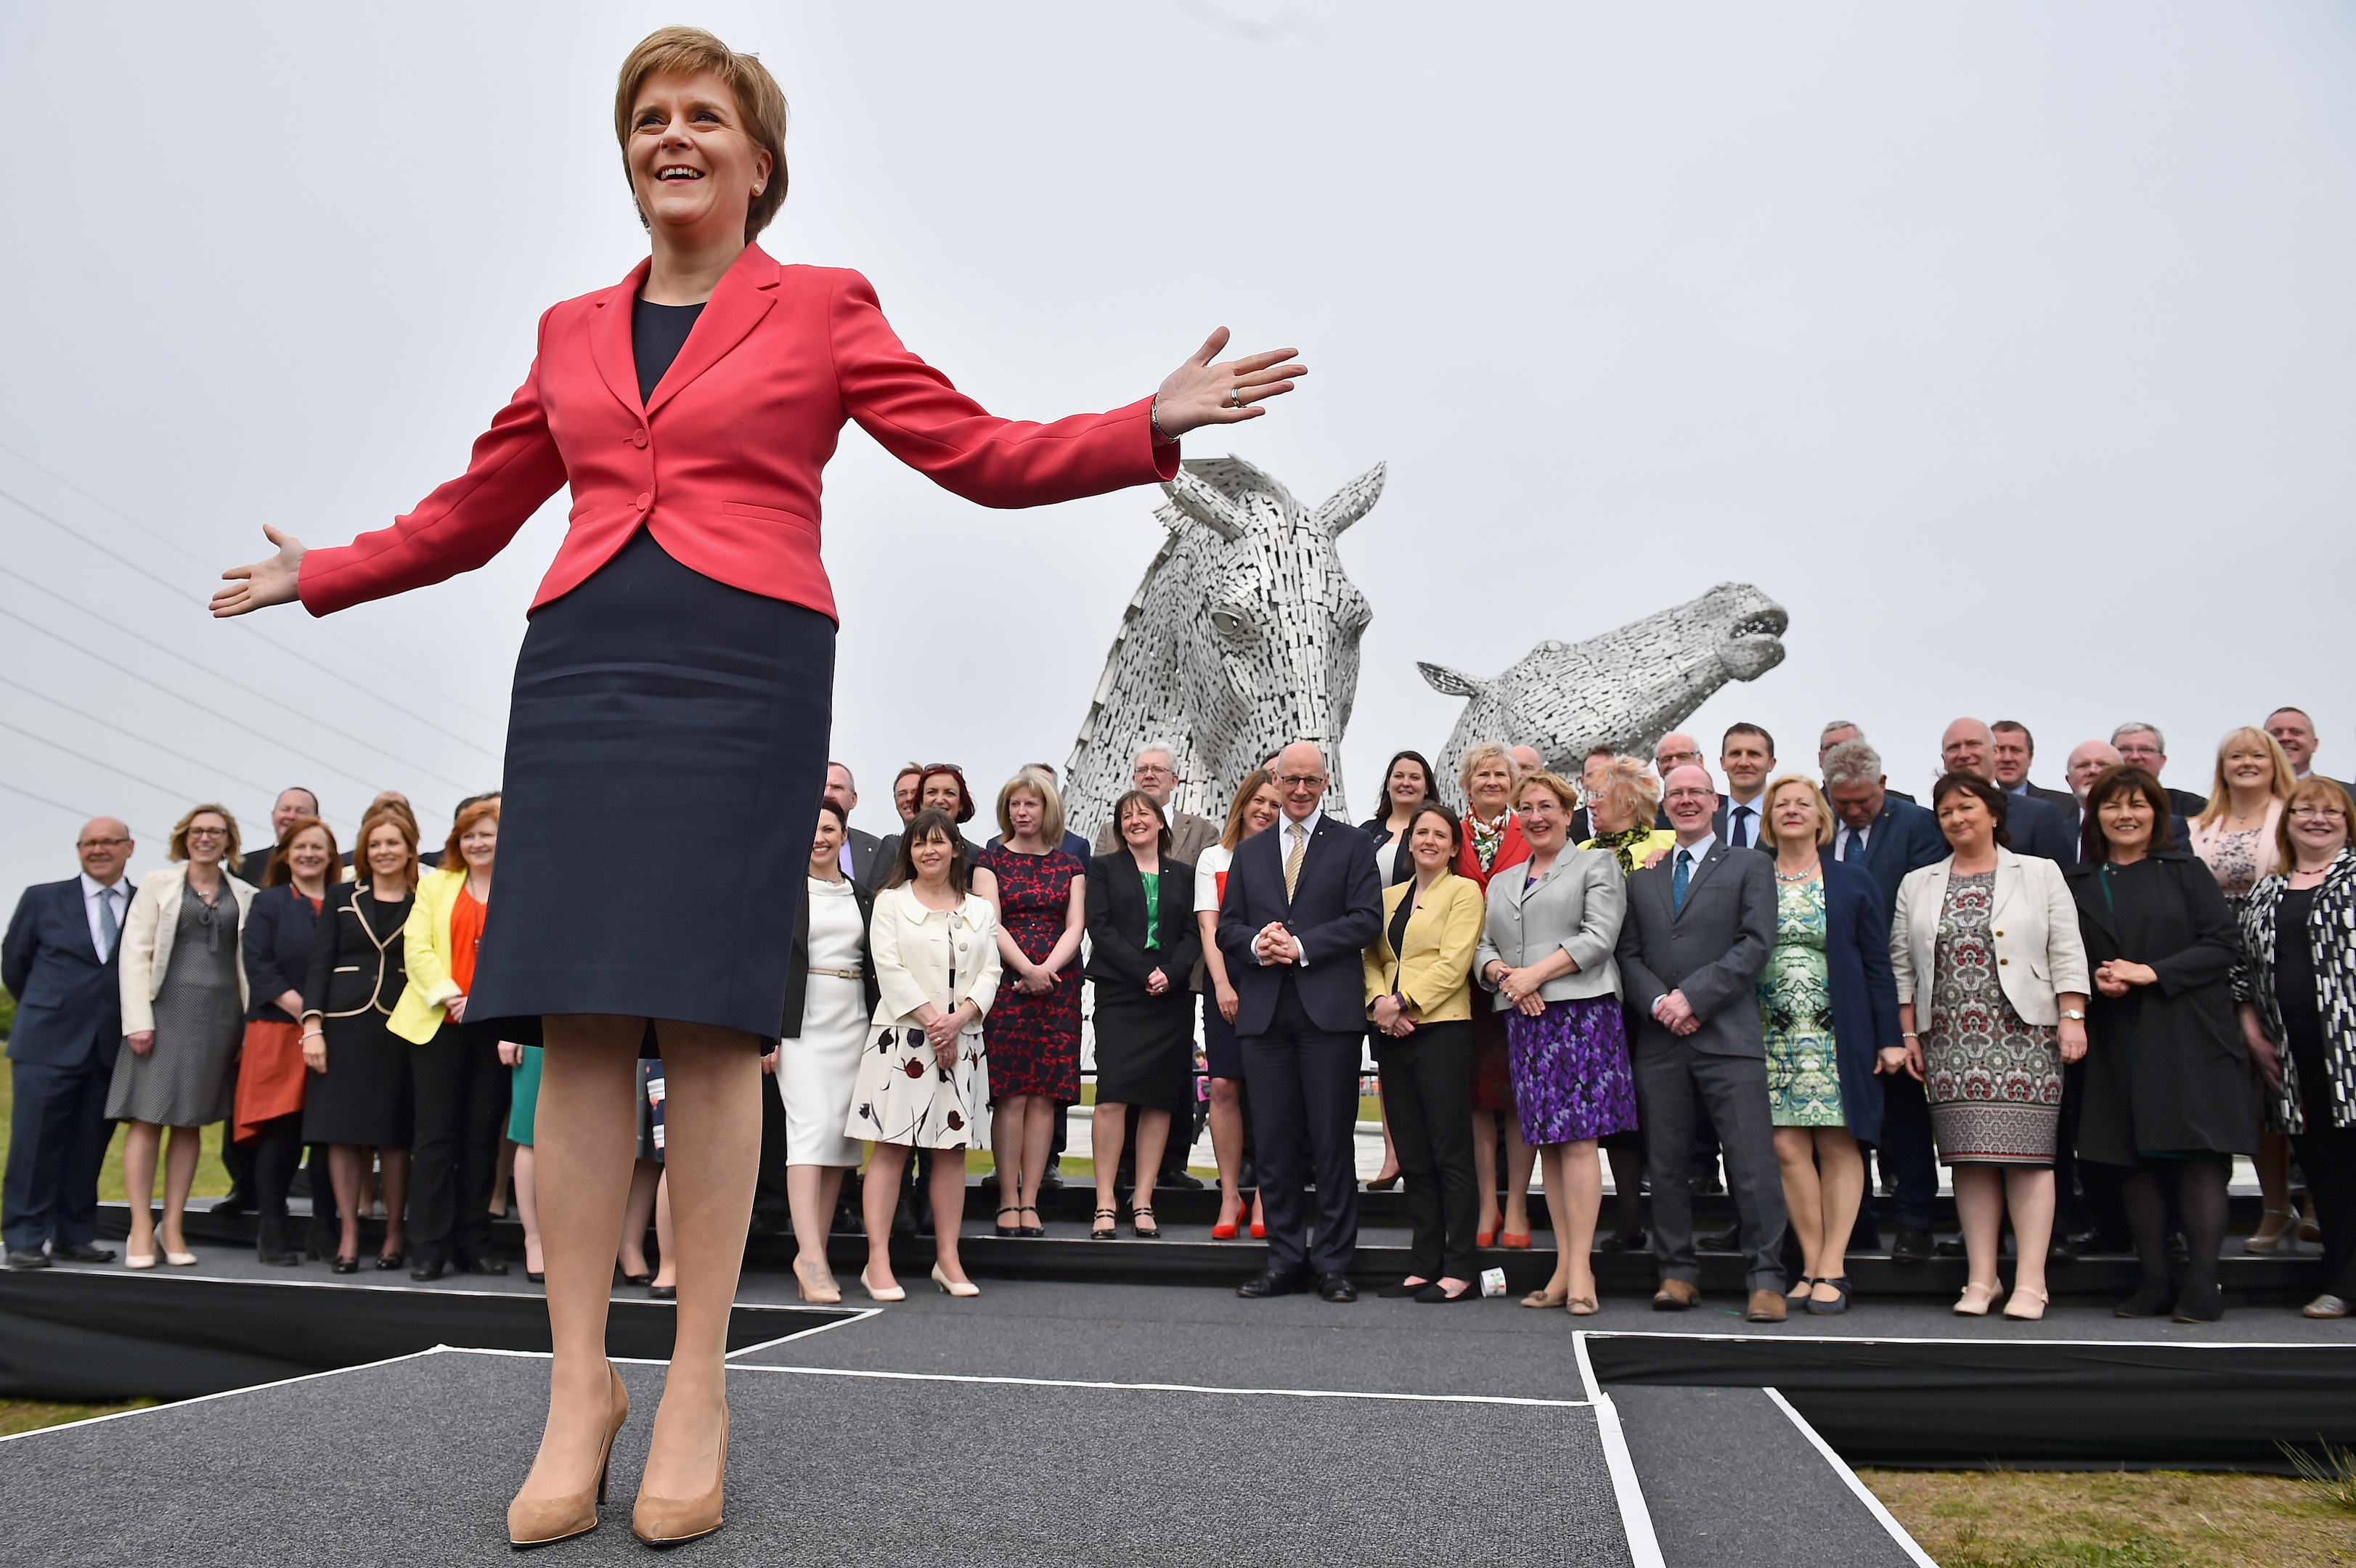 Nicola Sturgeon will lead a minority government at Holyrood but, including the Greens, can count on a majority of MSPs being pro-independence